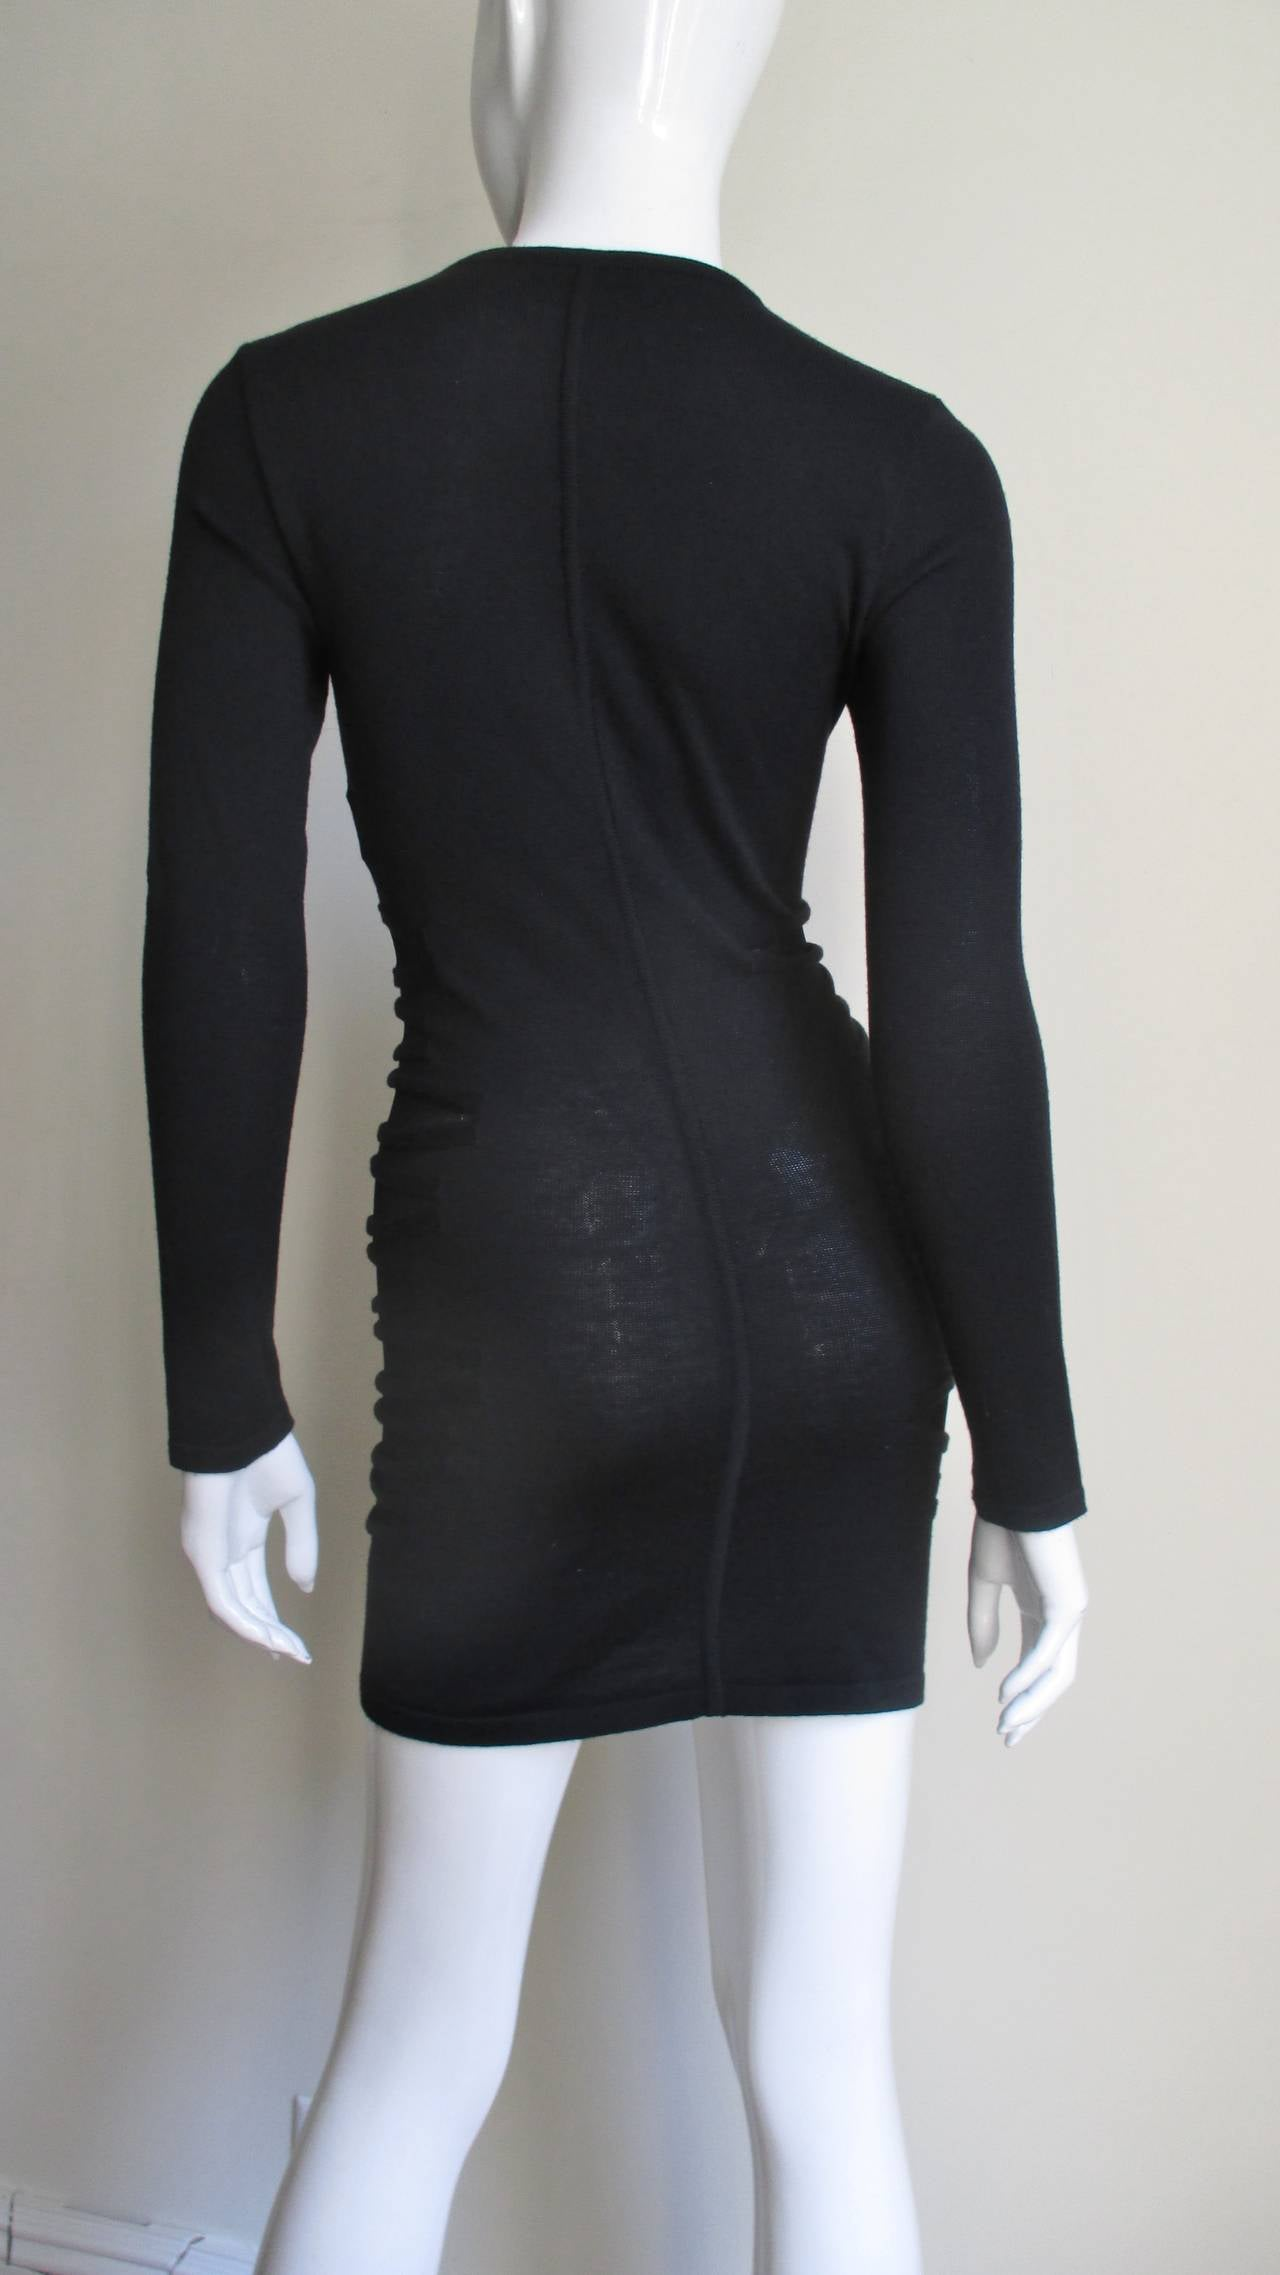 Versace Knit Dress With Mesh Cut-outs For Sale 2